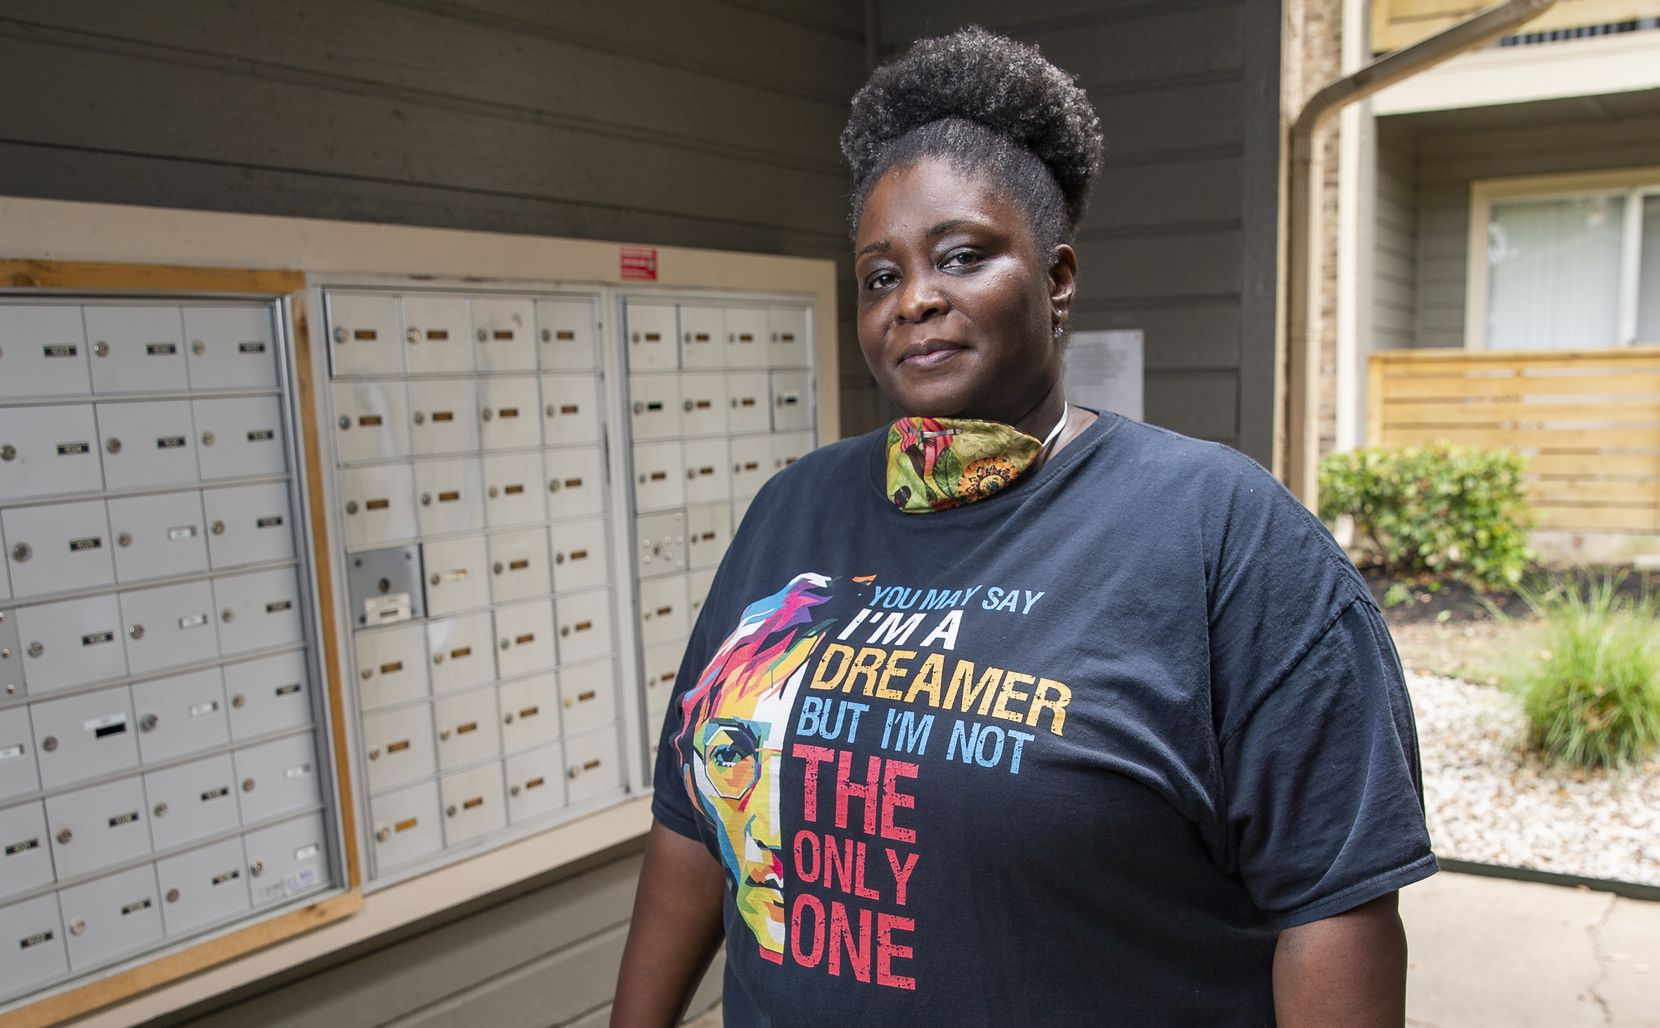 Katina Range, who has worked as a postal clerk since 1992, poses for a photo in the mail center at her apartment complex in Dallas.